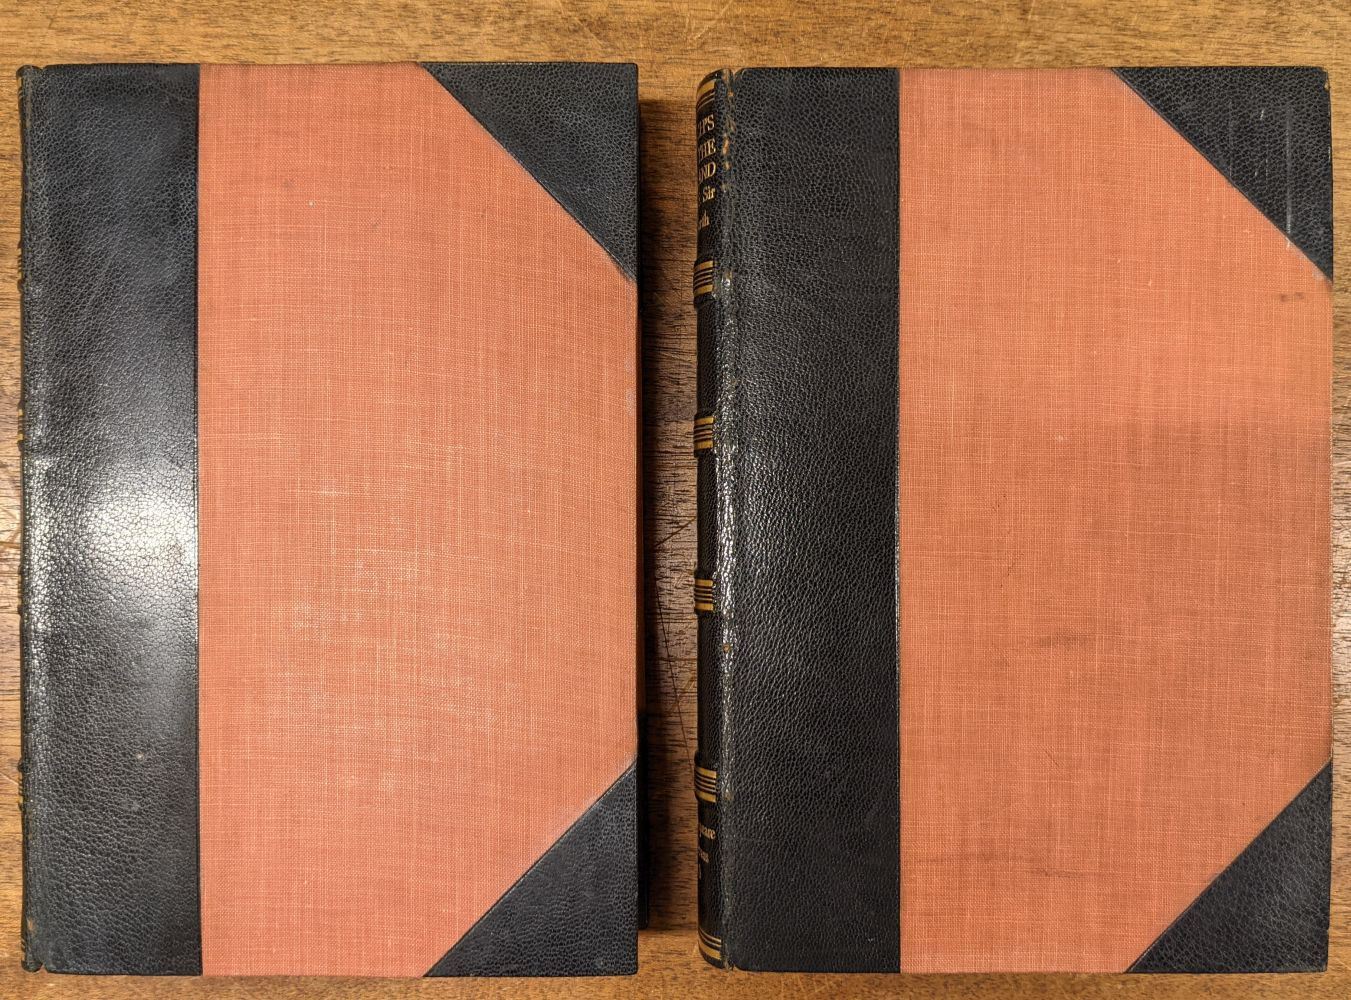 Shakespeare Head Press. Lives of the Noble Grecians and Romanes, 1928 - Image 8 of 13